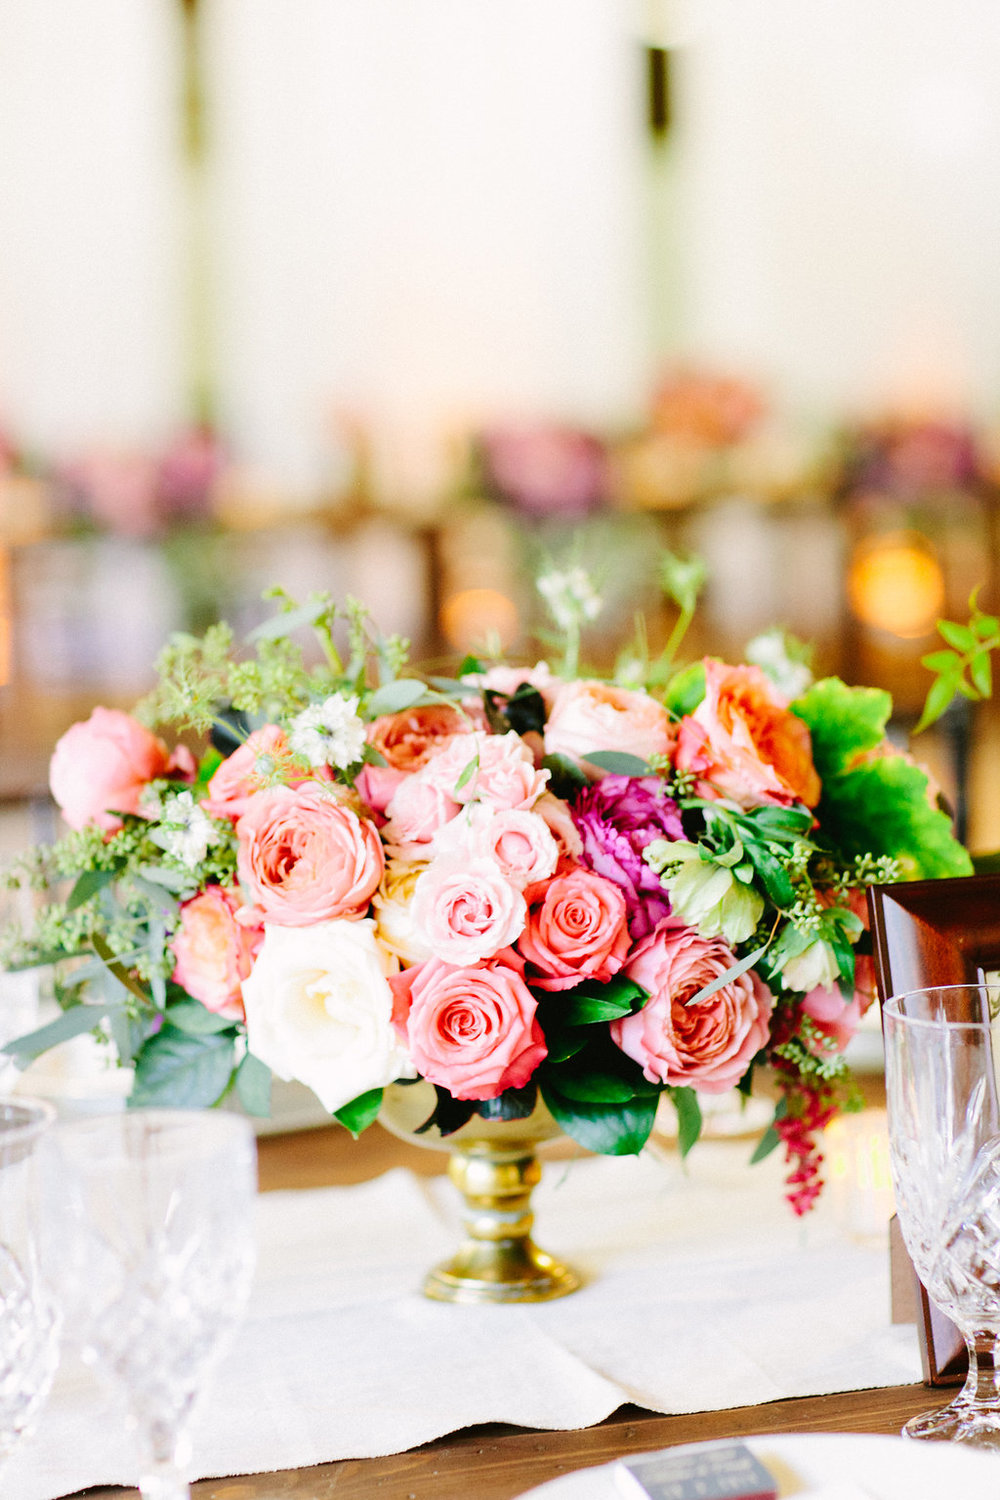 Vintage Elegance Centerpiece by Passion Roots | Lehua Noelle Photography | Oahu, Hawaii